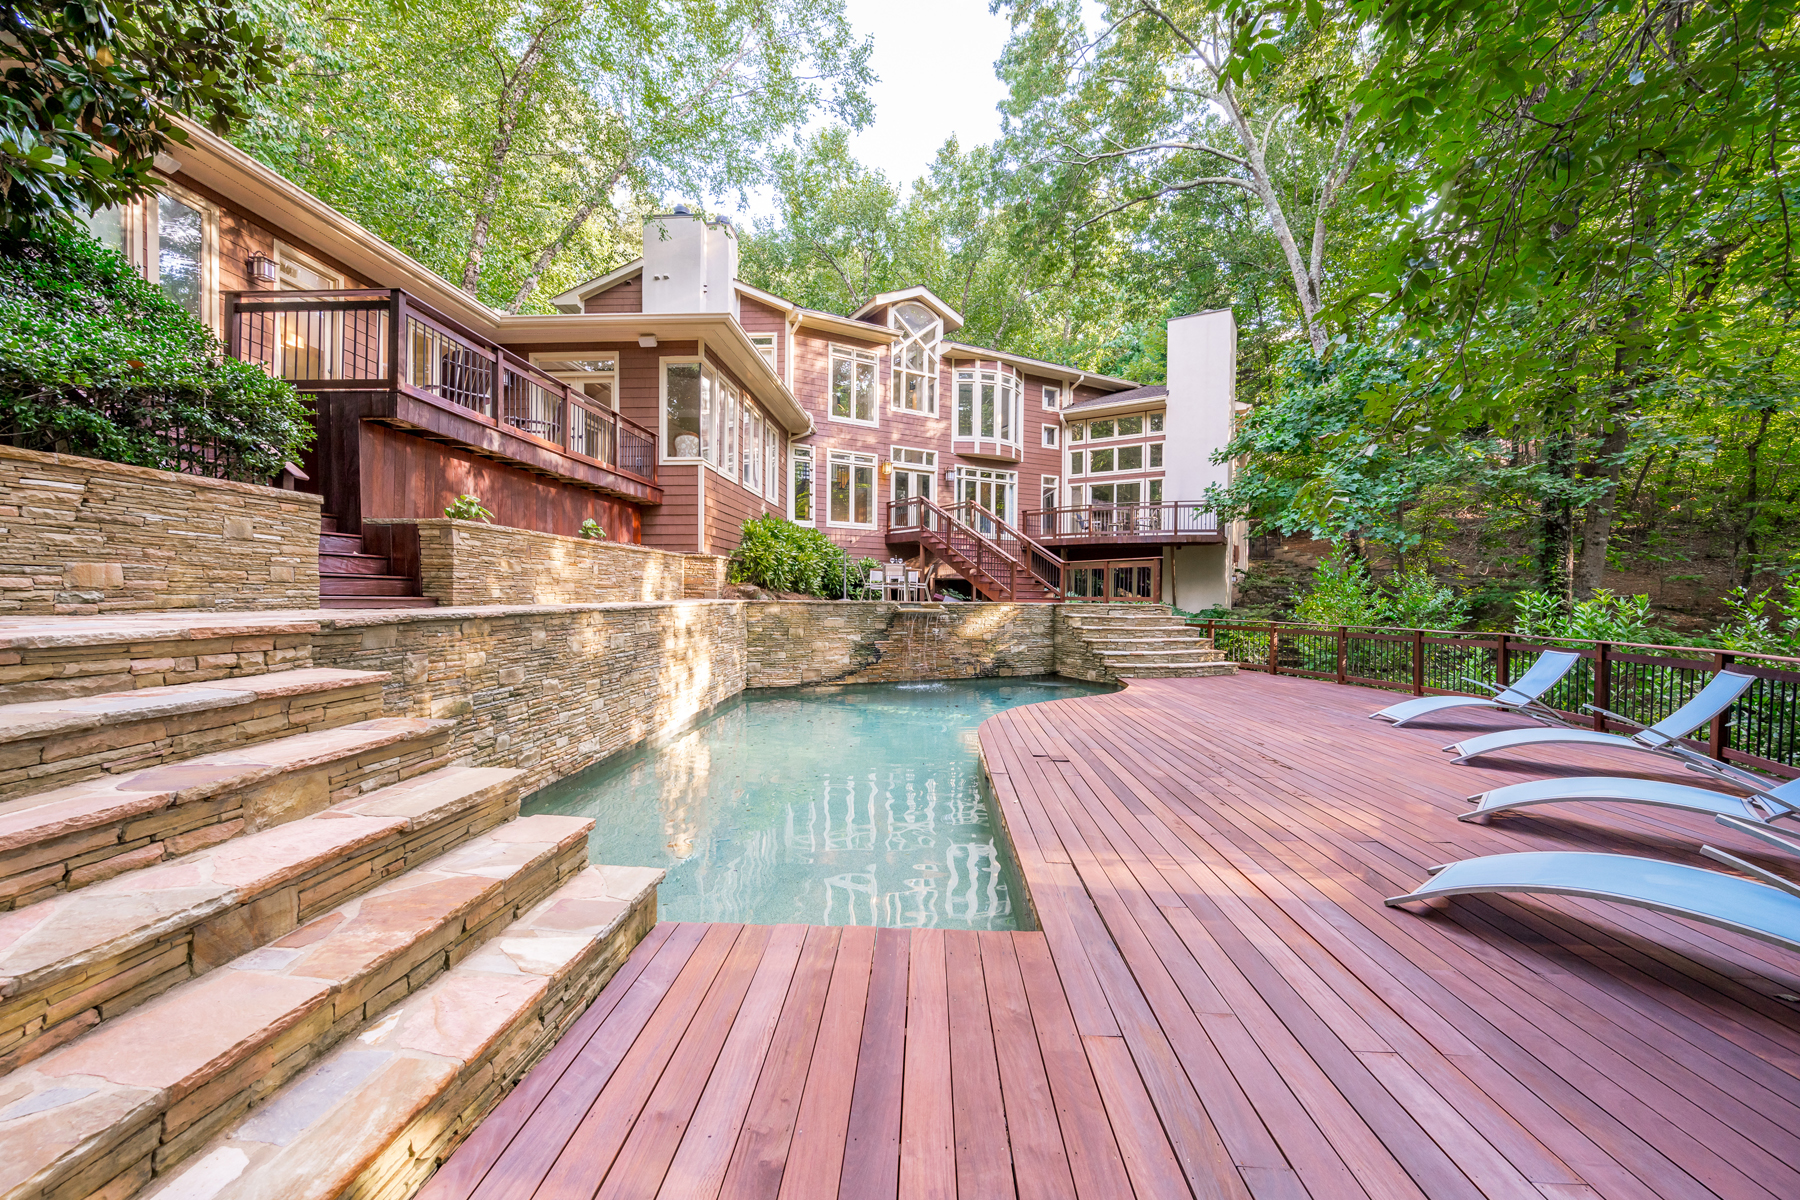 Property for Sale at Frank Lloyd Wright Inspired Home on 2+/- Picturesque Acres 4767 Riverview Road, Atlanta, Georgia 30327 United States